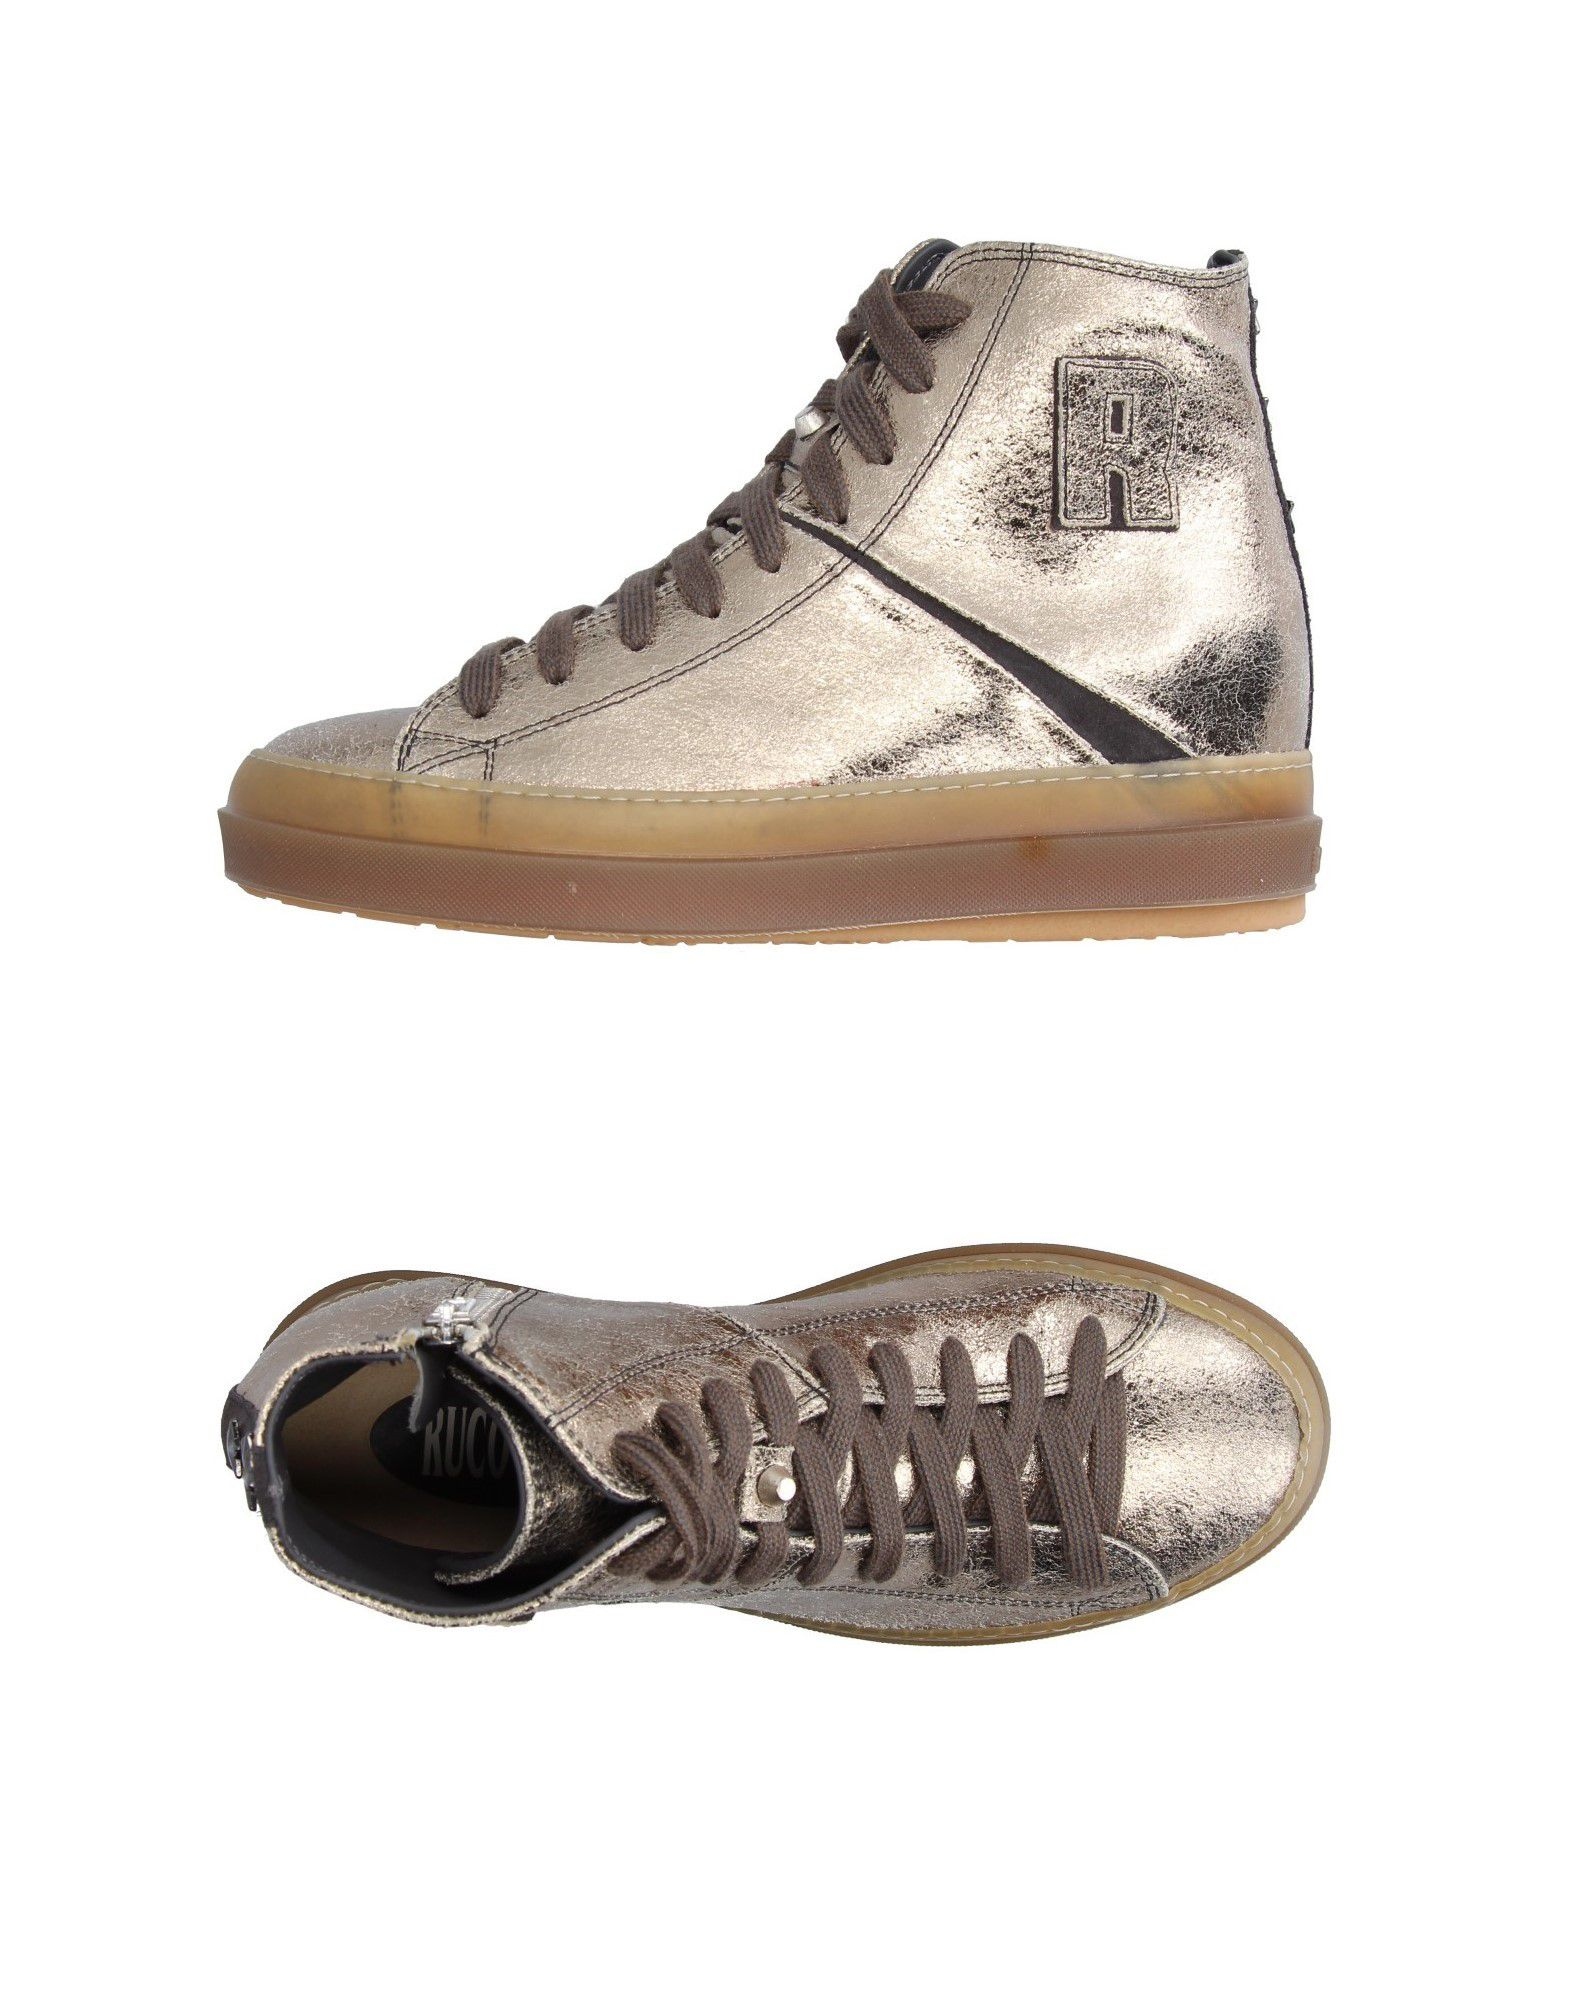 Ruco on Line Sneakers - Women Ruco Line Sneakers online on Ruco  Australia - 11221939CK ee9129